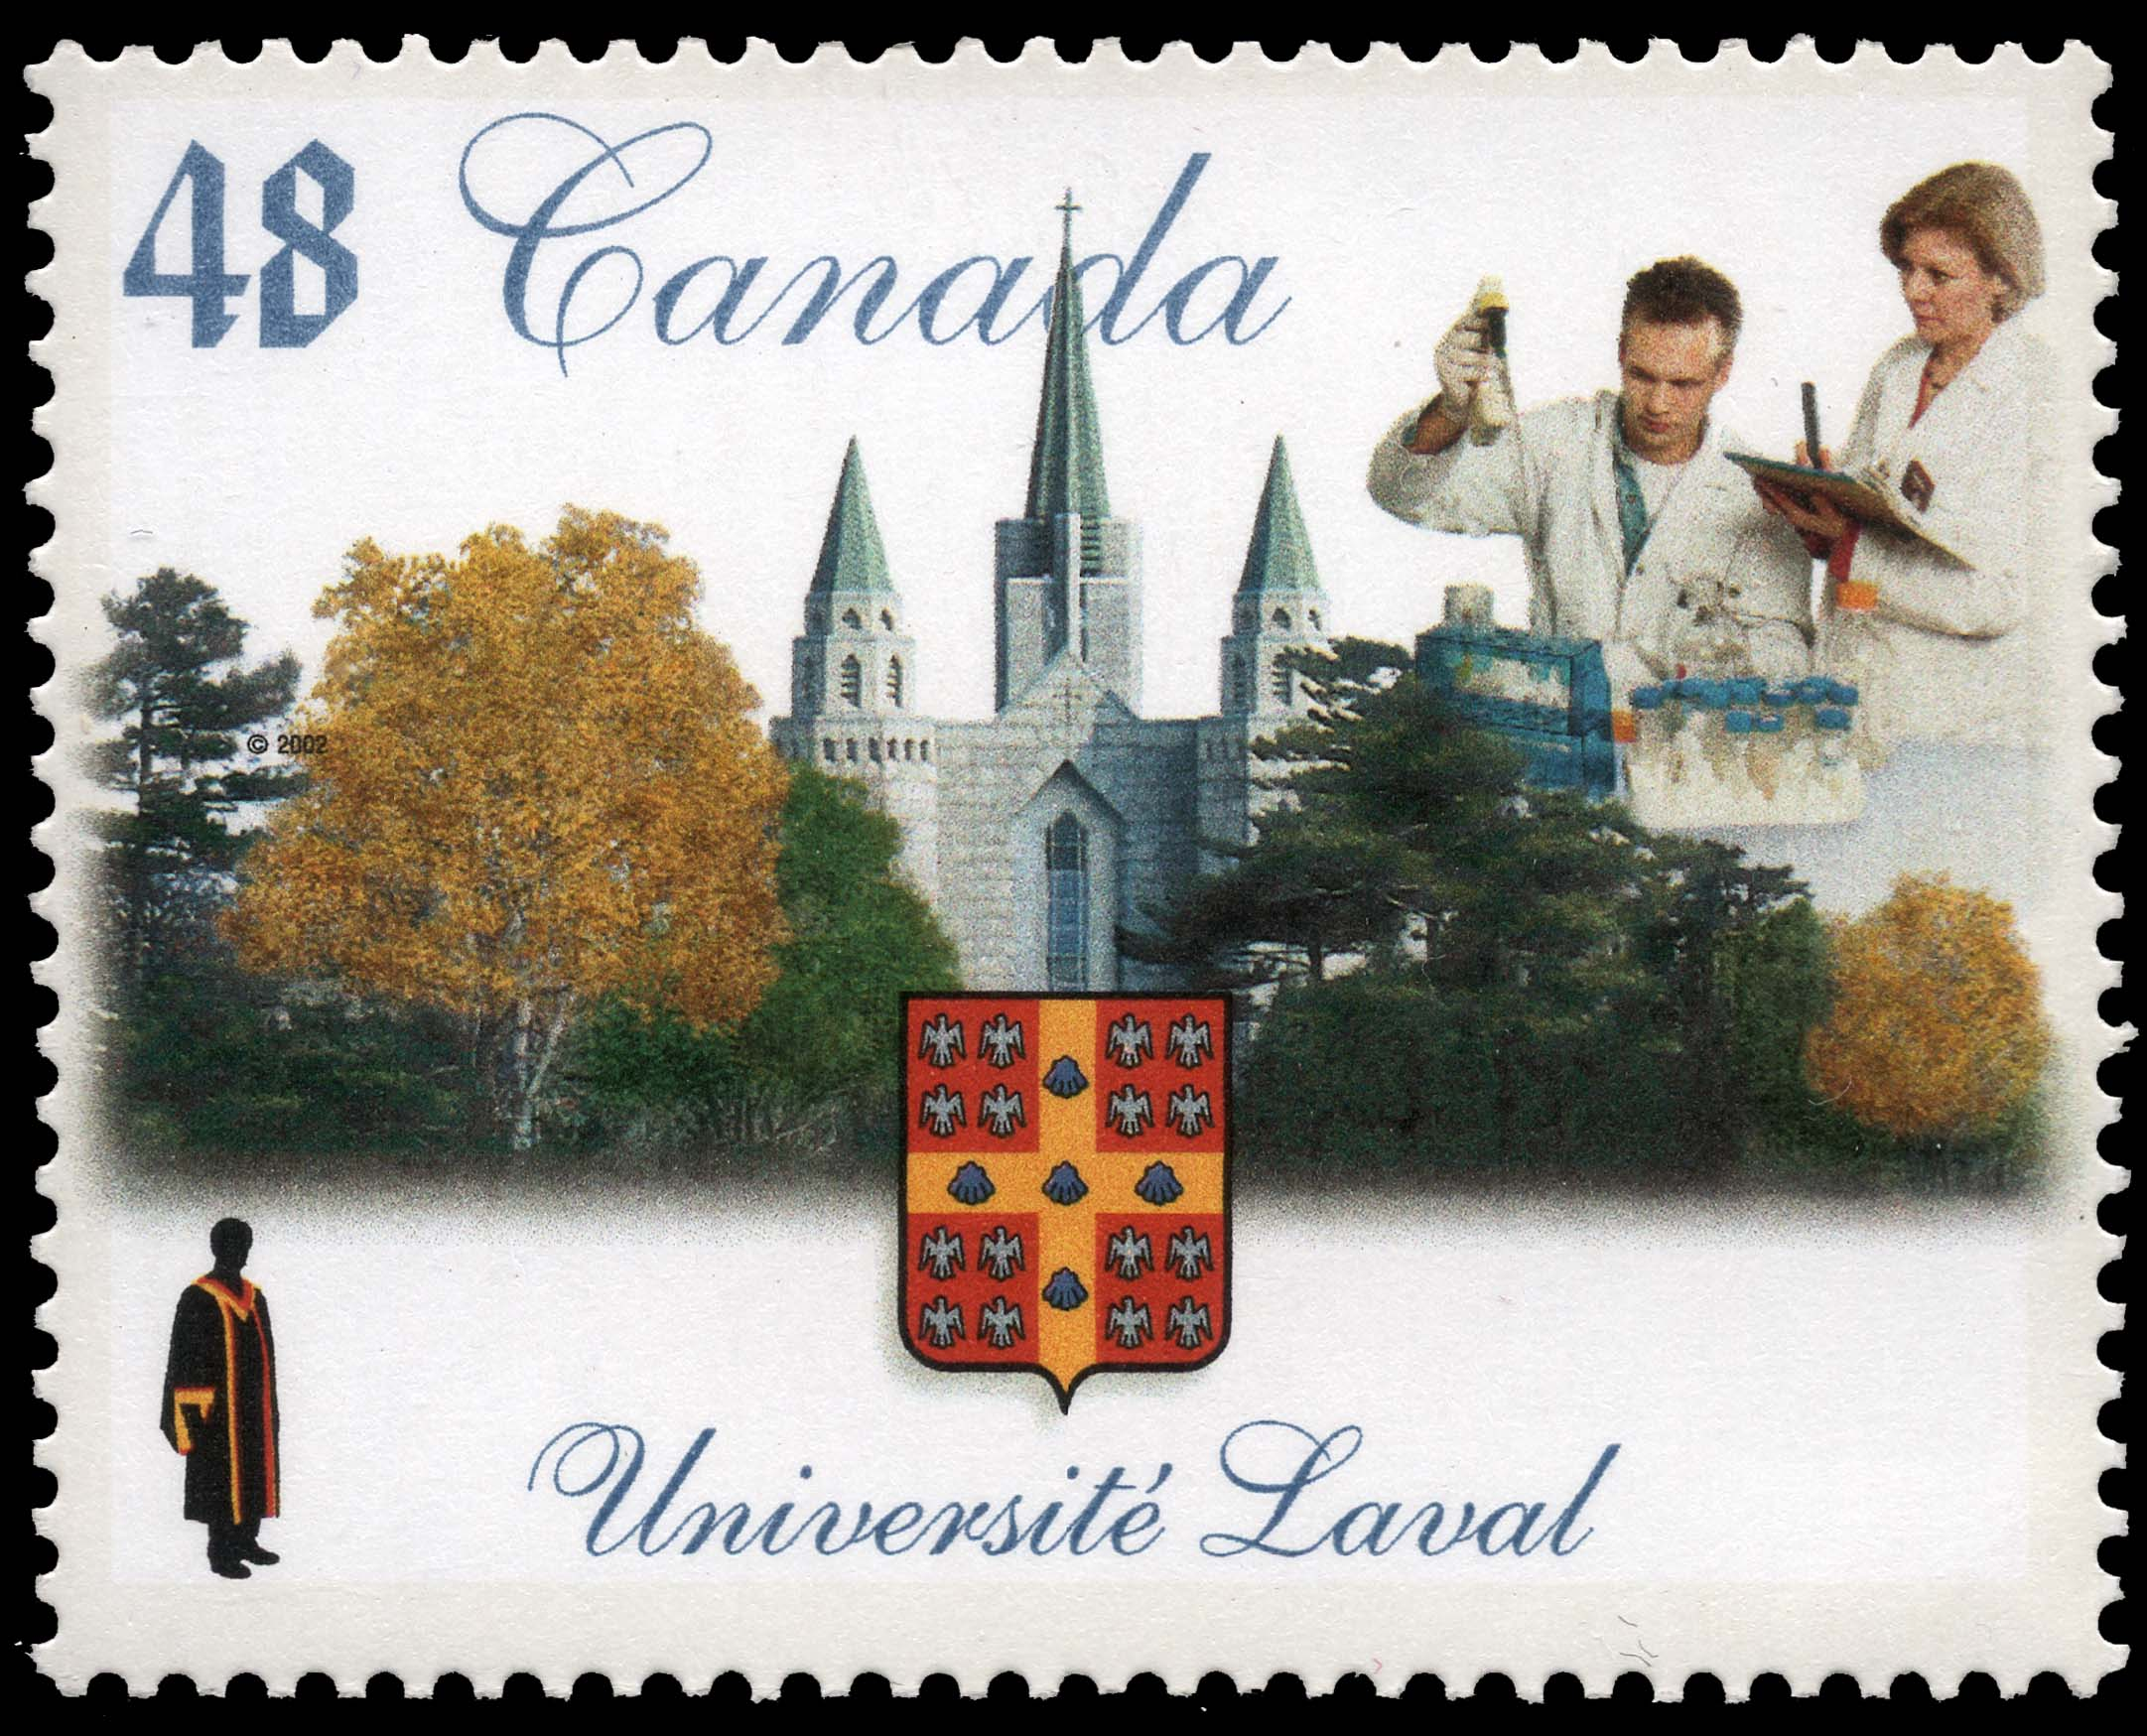 Universite Laval Canada Postage Stamp | Canadian Universities